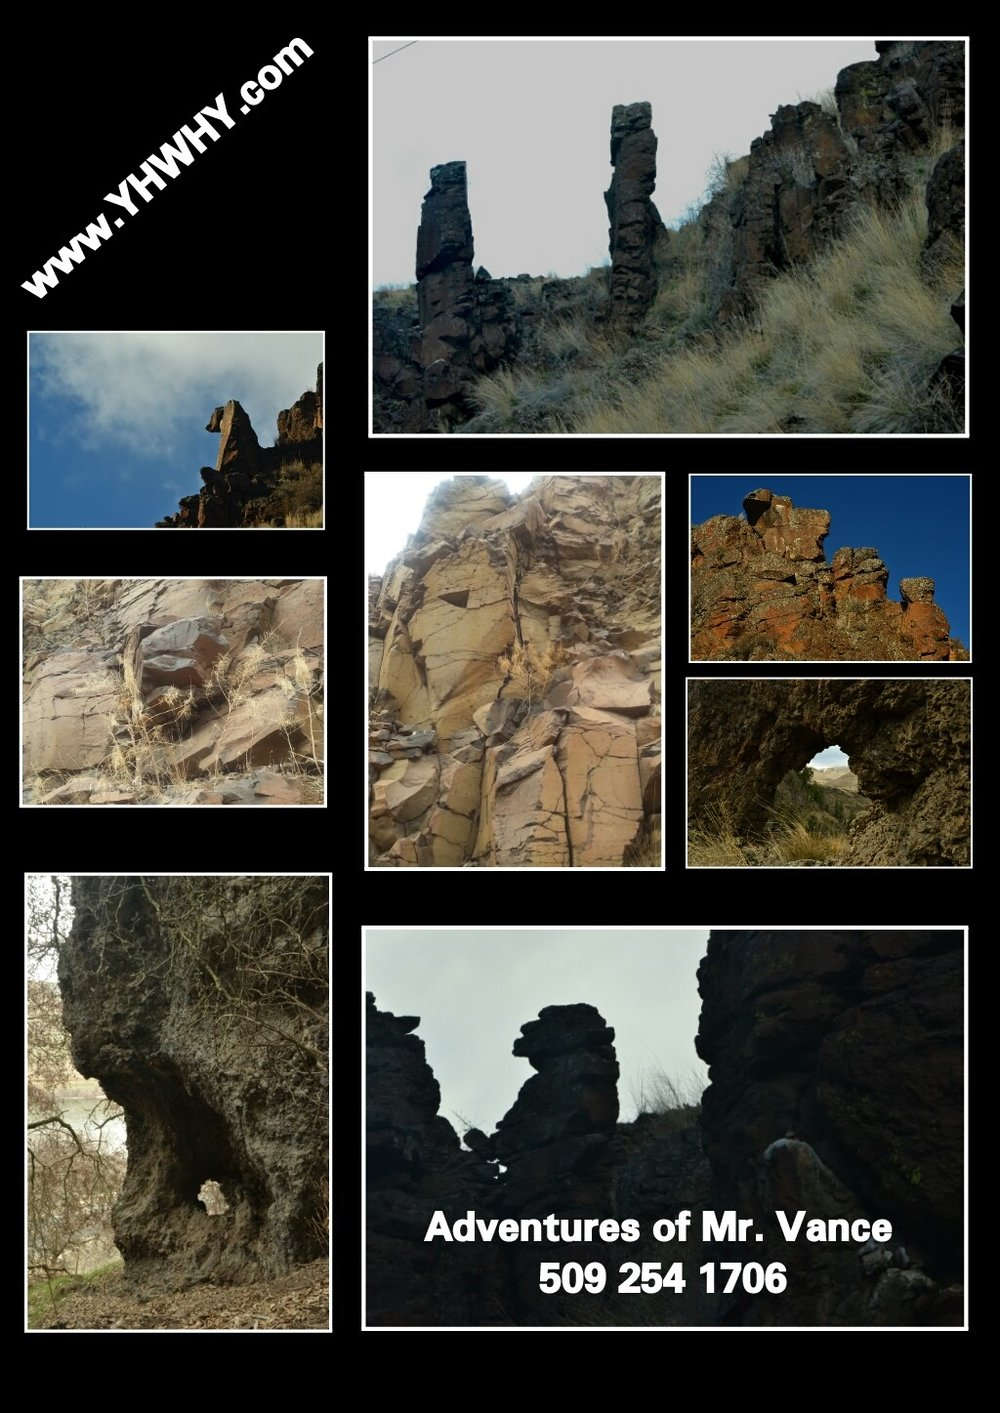 ADVENTURES IN HELLS CANYON BY VANCE.jpg